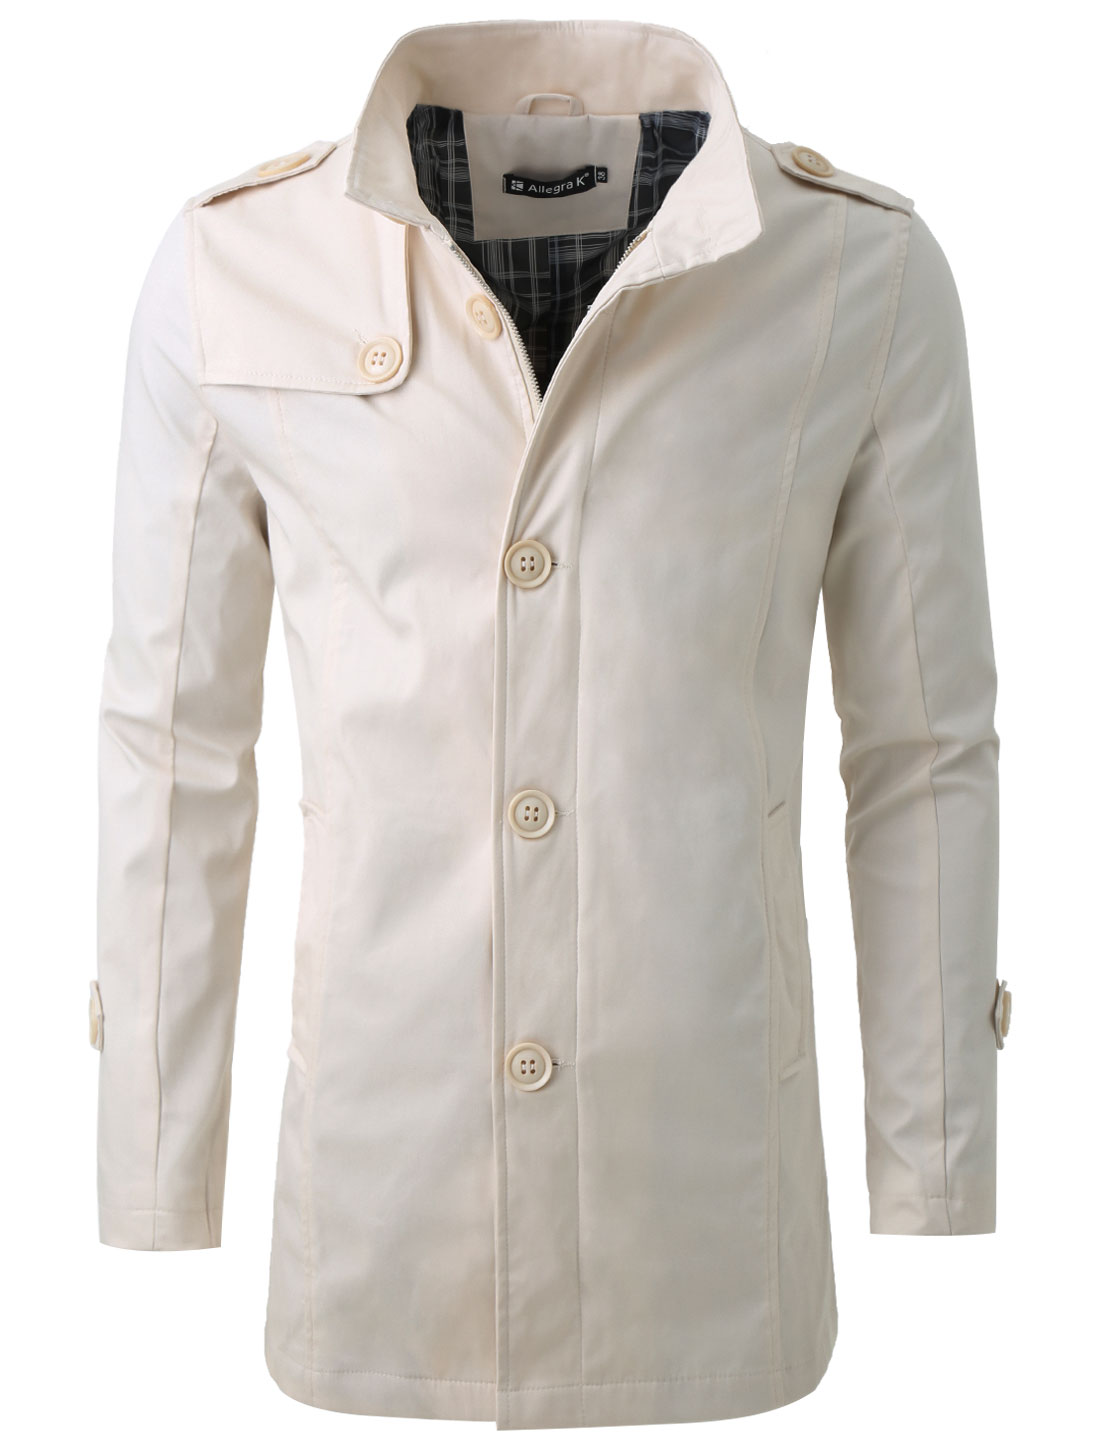 Men Convertible Collar Zip Closure Pockets Design Trench Coat Beige M